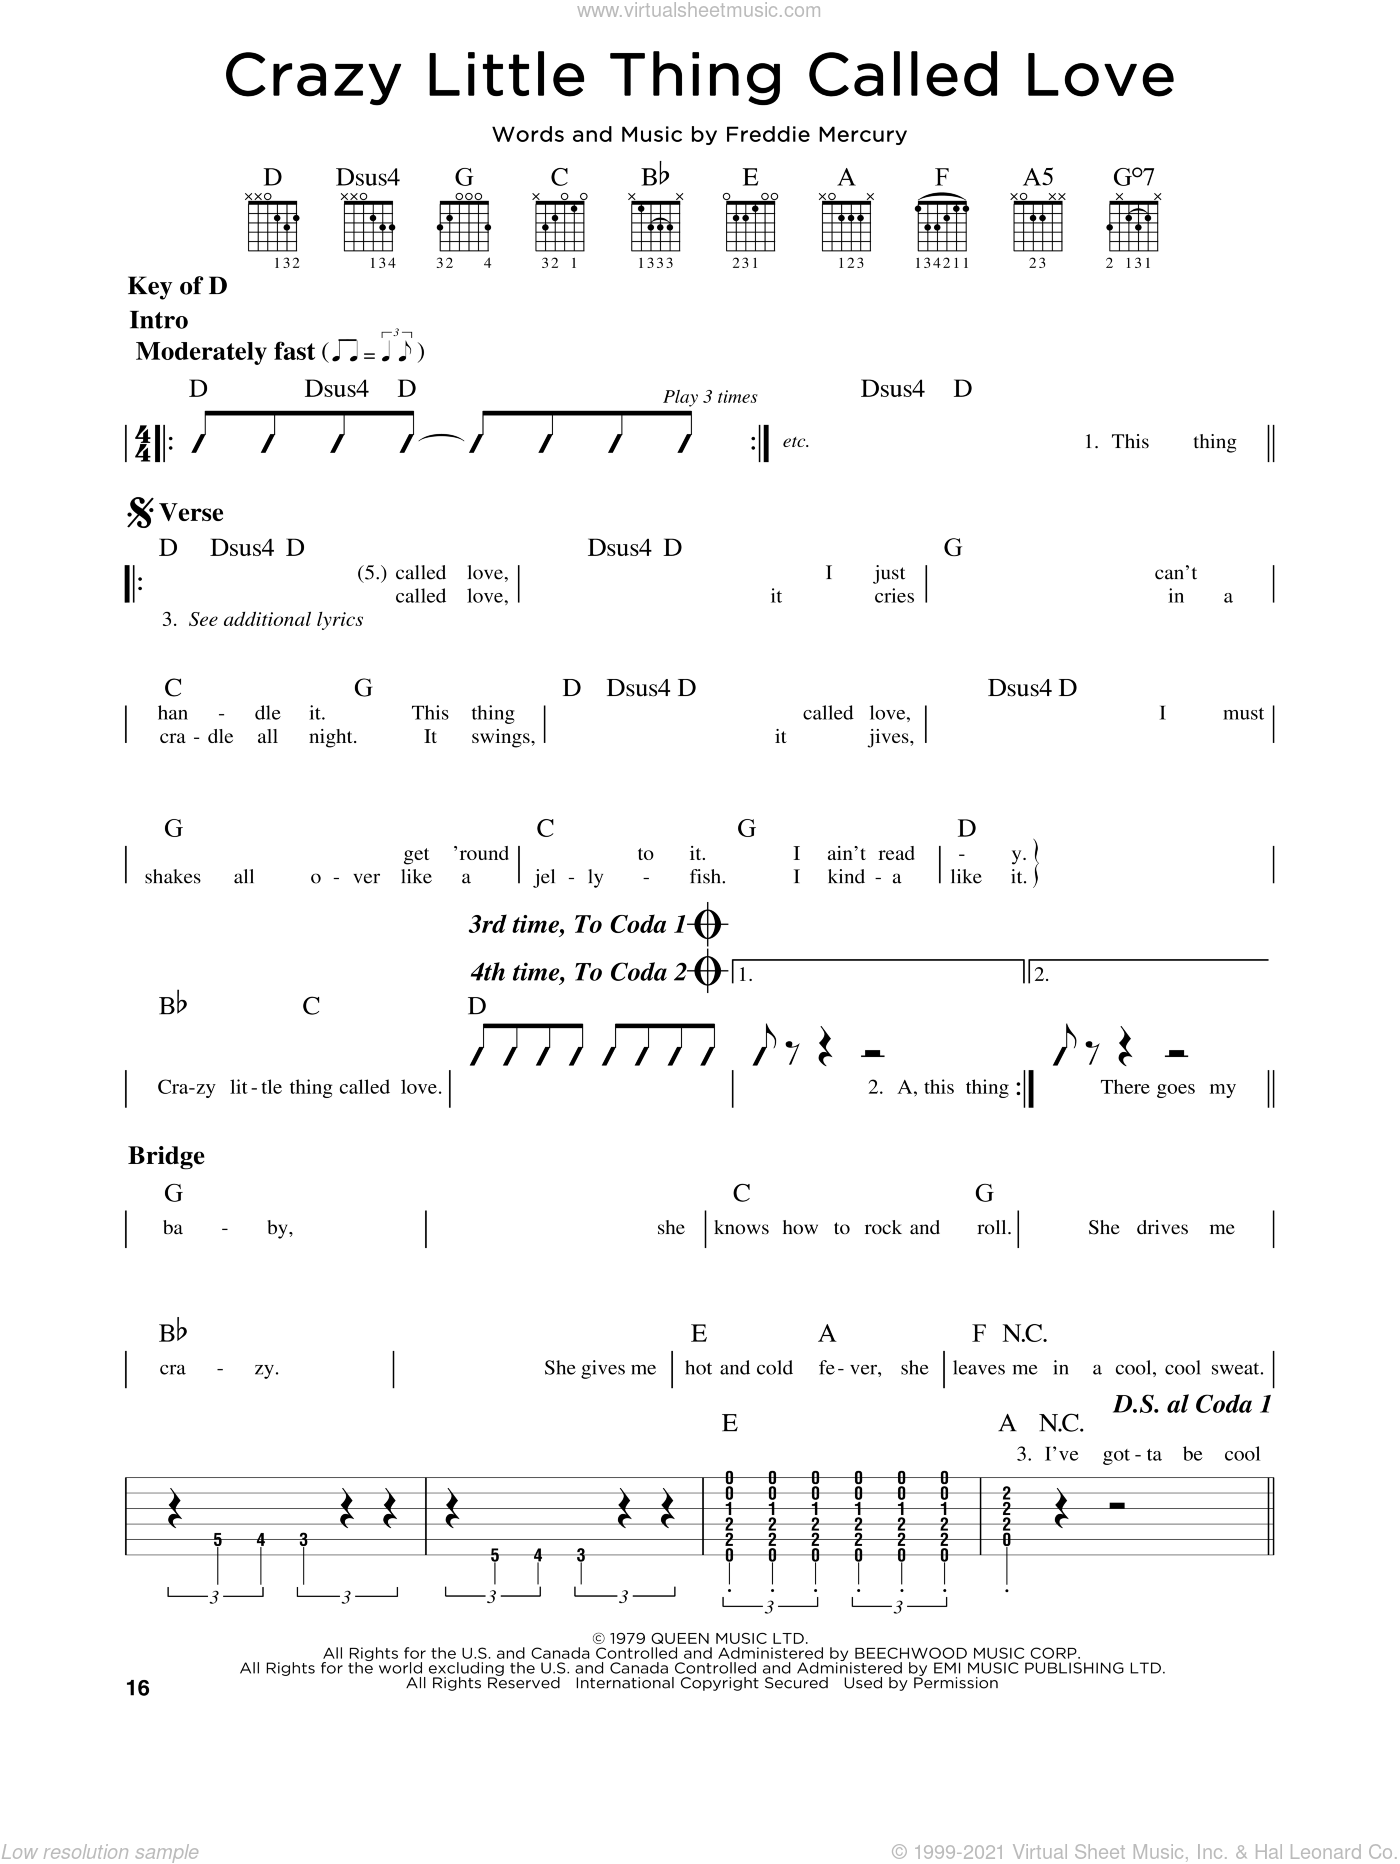 Crazy Little Thing Called Love sheet music for guitar solo (lead sheet) by Freddie Mercury, Dwight Yoakam and Queen. Score Image Preview.